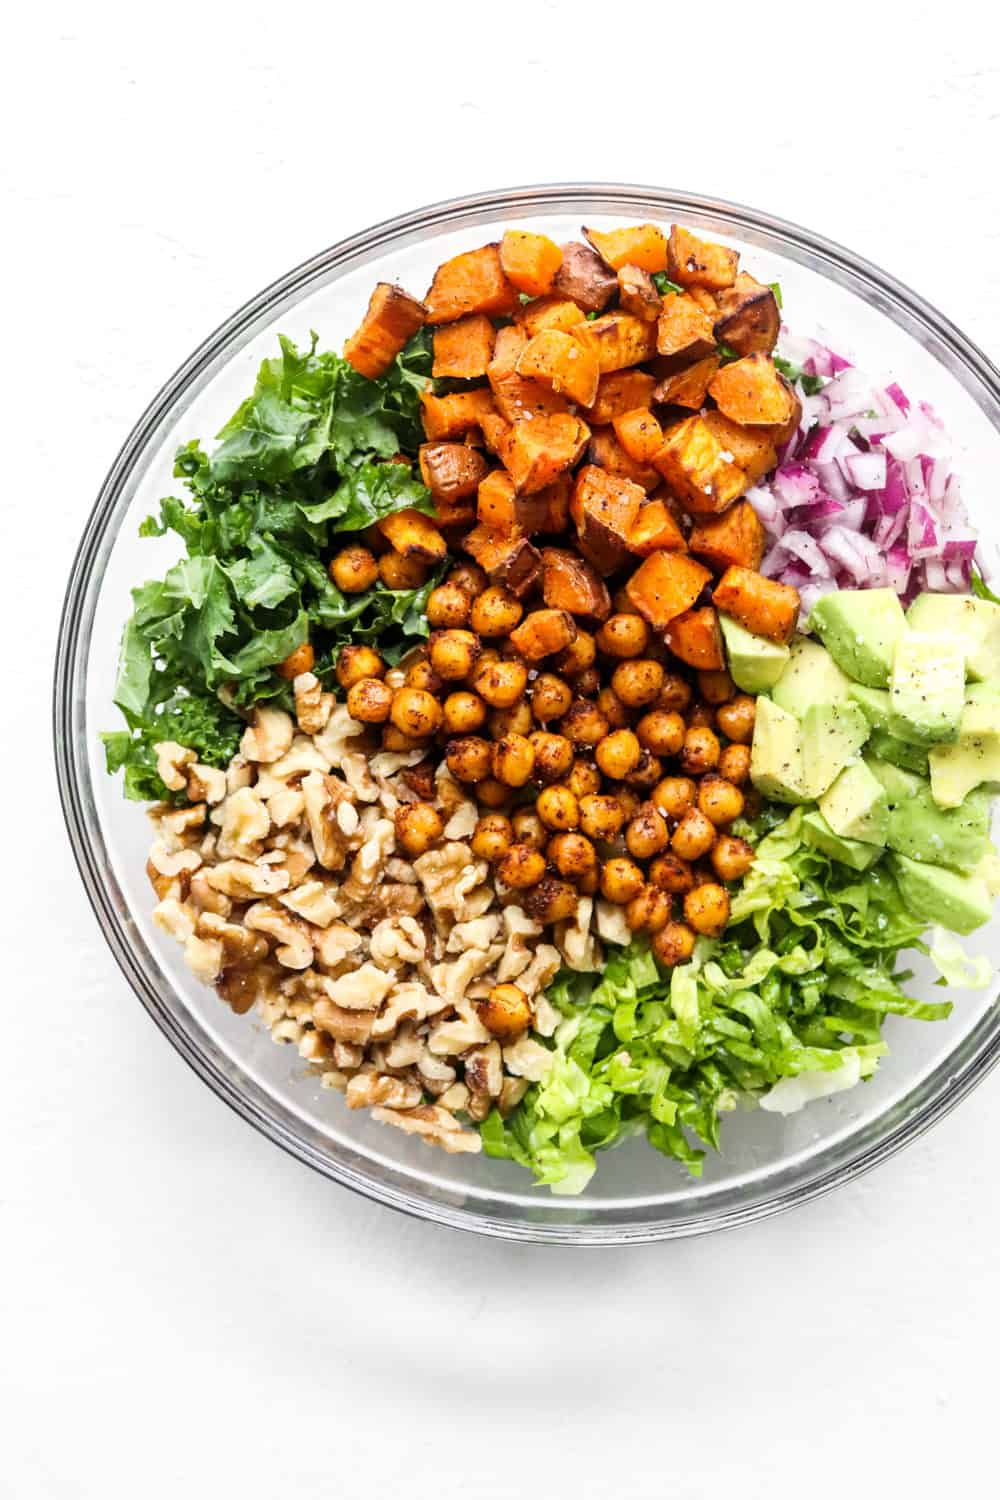 chopped kale, romaine lettuce, roasted sweet potatoes, diced onion and walnuts in a round glass bowl